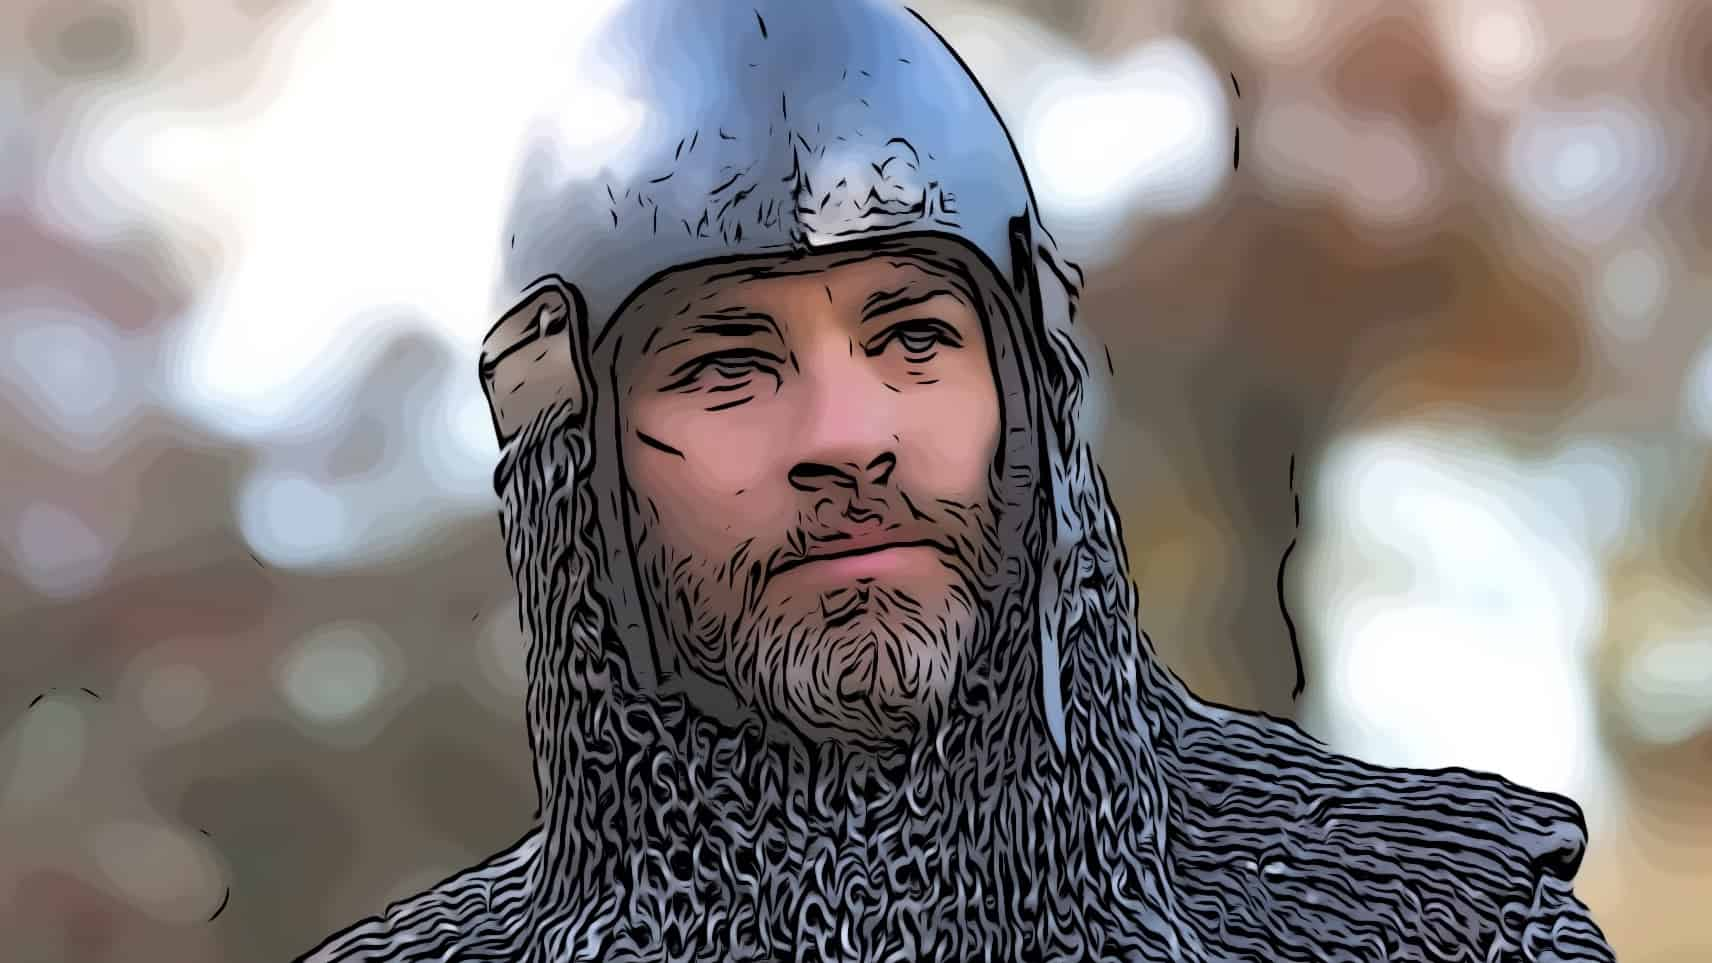 Scene from Outlaw King for Chris Pine movies post.